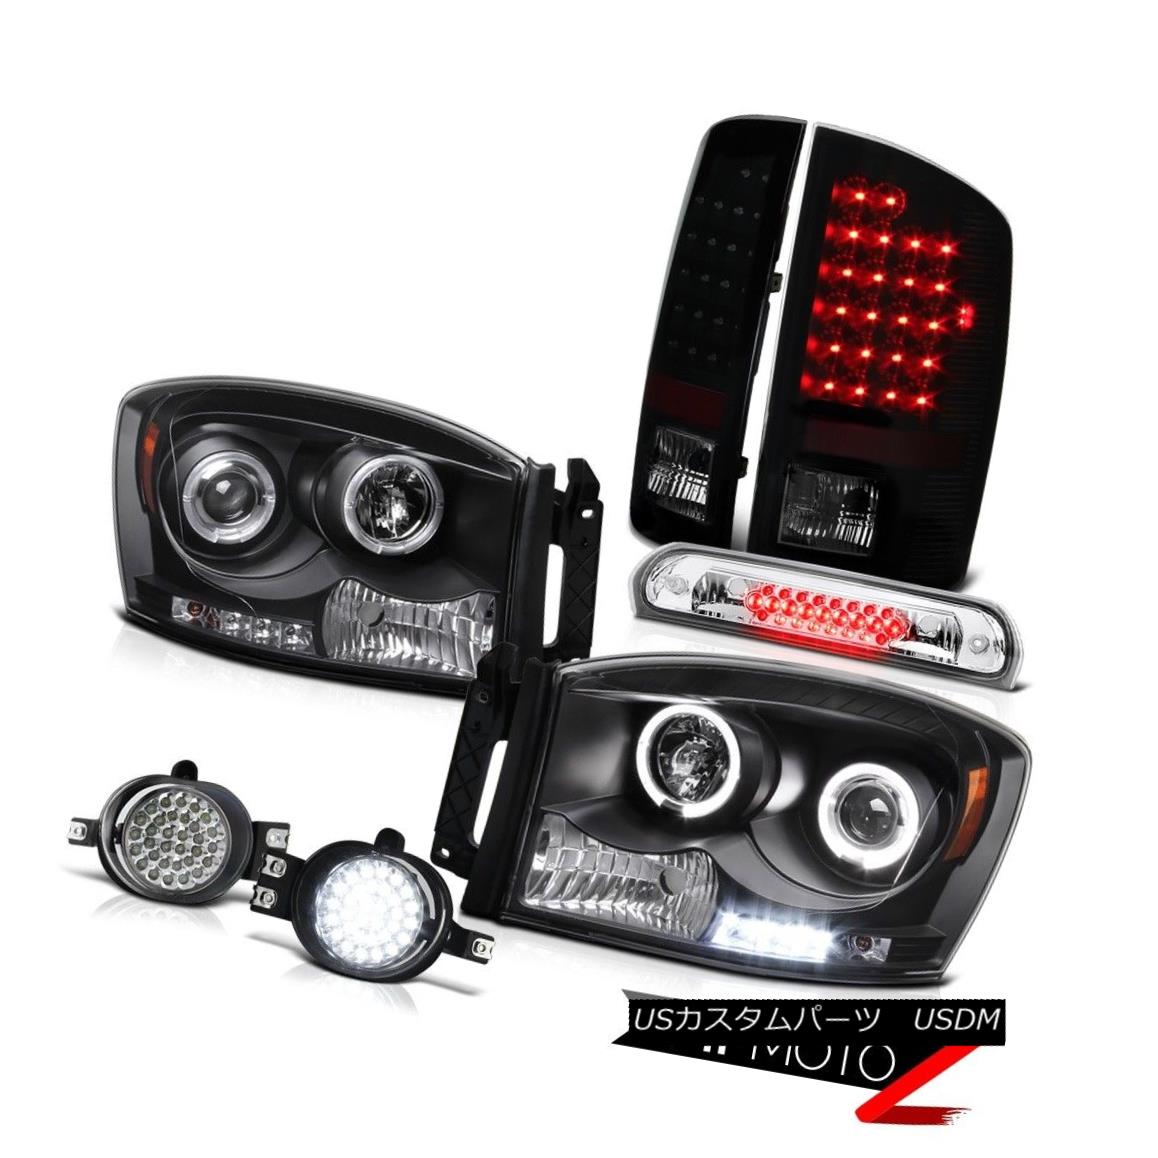 テールライト 07 08 Ram Halo Headlights Sinister Black LED Tail Lights Foglights Third Brake 07 08ラム・ハロー・ヘッドライトブラック・テール・ライトFoglights Third Brake